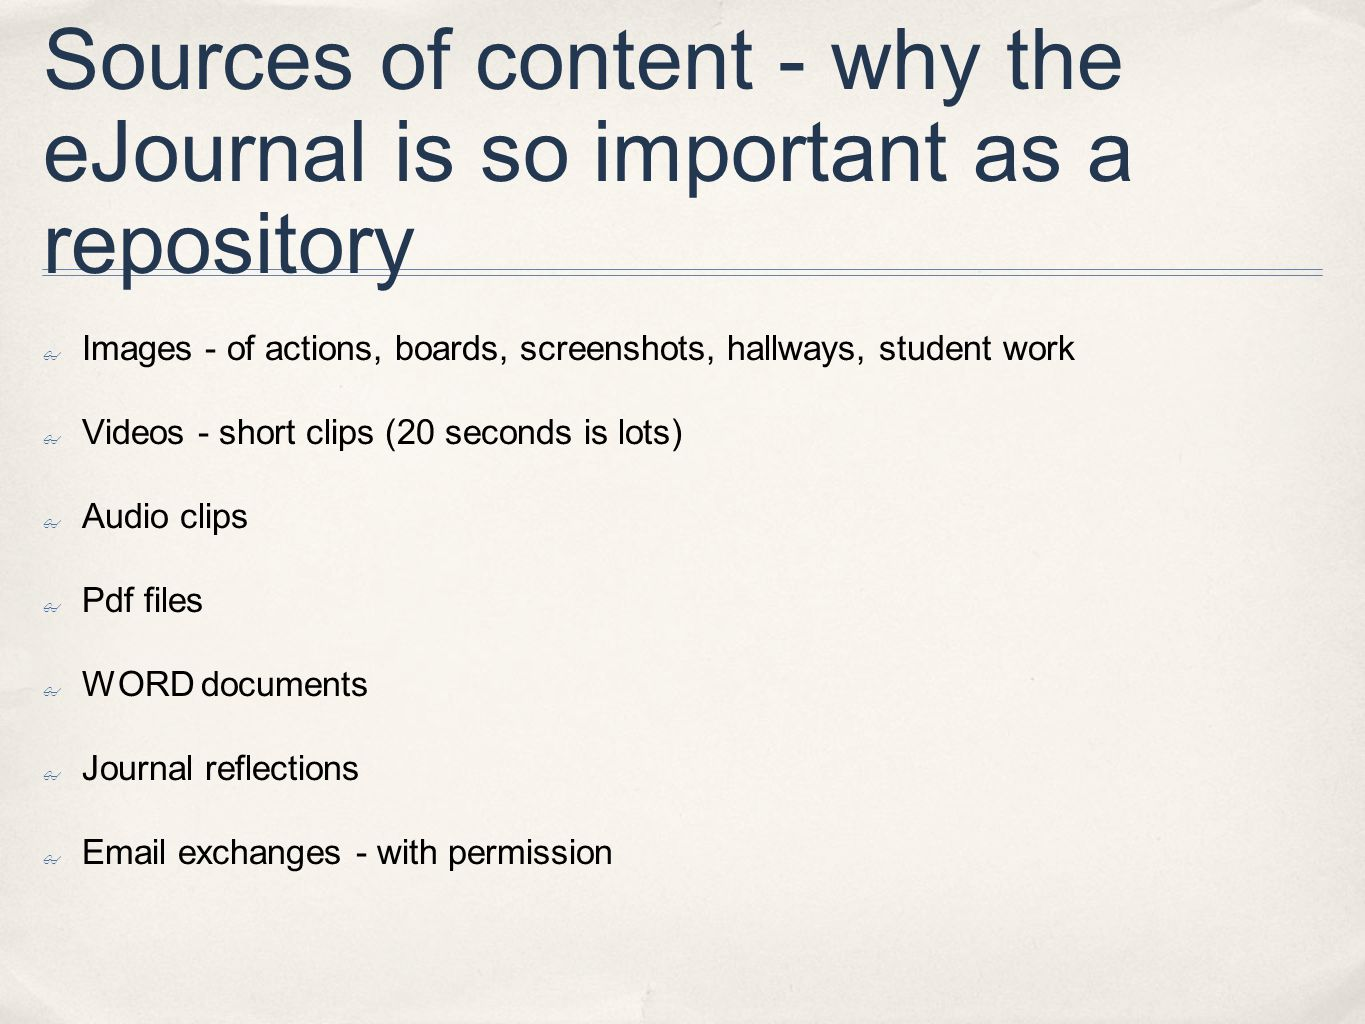 Sources of content - why the eJournal is so important as a repository ✤ Images - of actions, boards, screenshots, hallways, student work ✤ Videos - short clips (20 seconds is lots) ✤ Audio clips ✤ Pdf files ✤ WORD documents ✤ Journal reflections ✤ Email exchanges - with permission